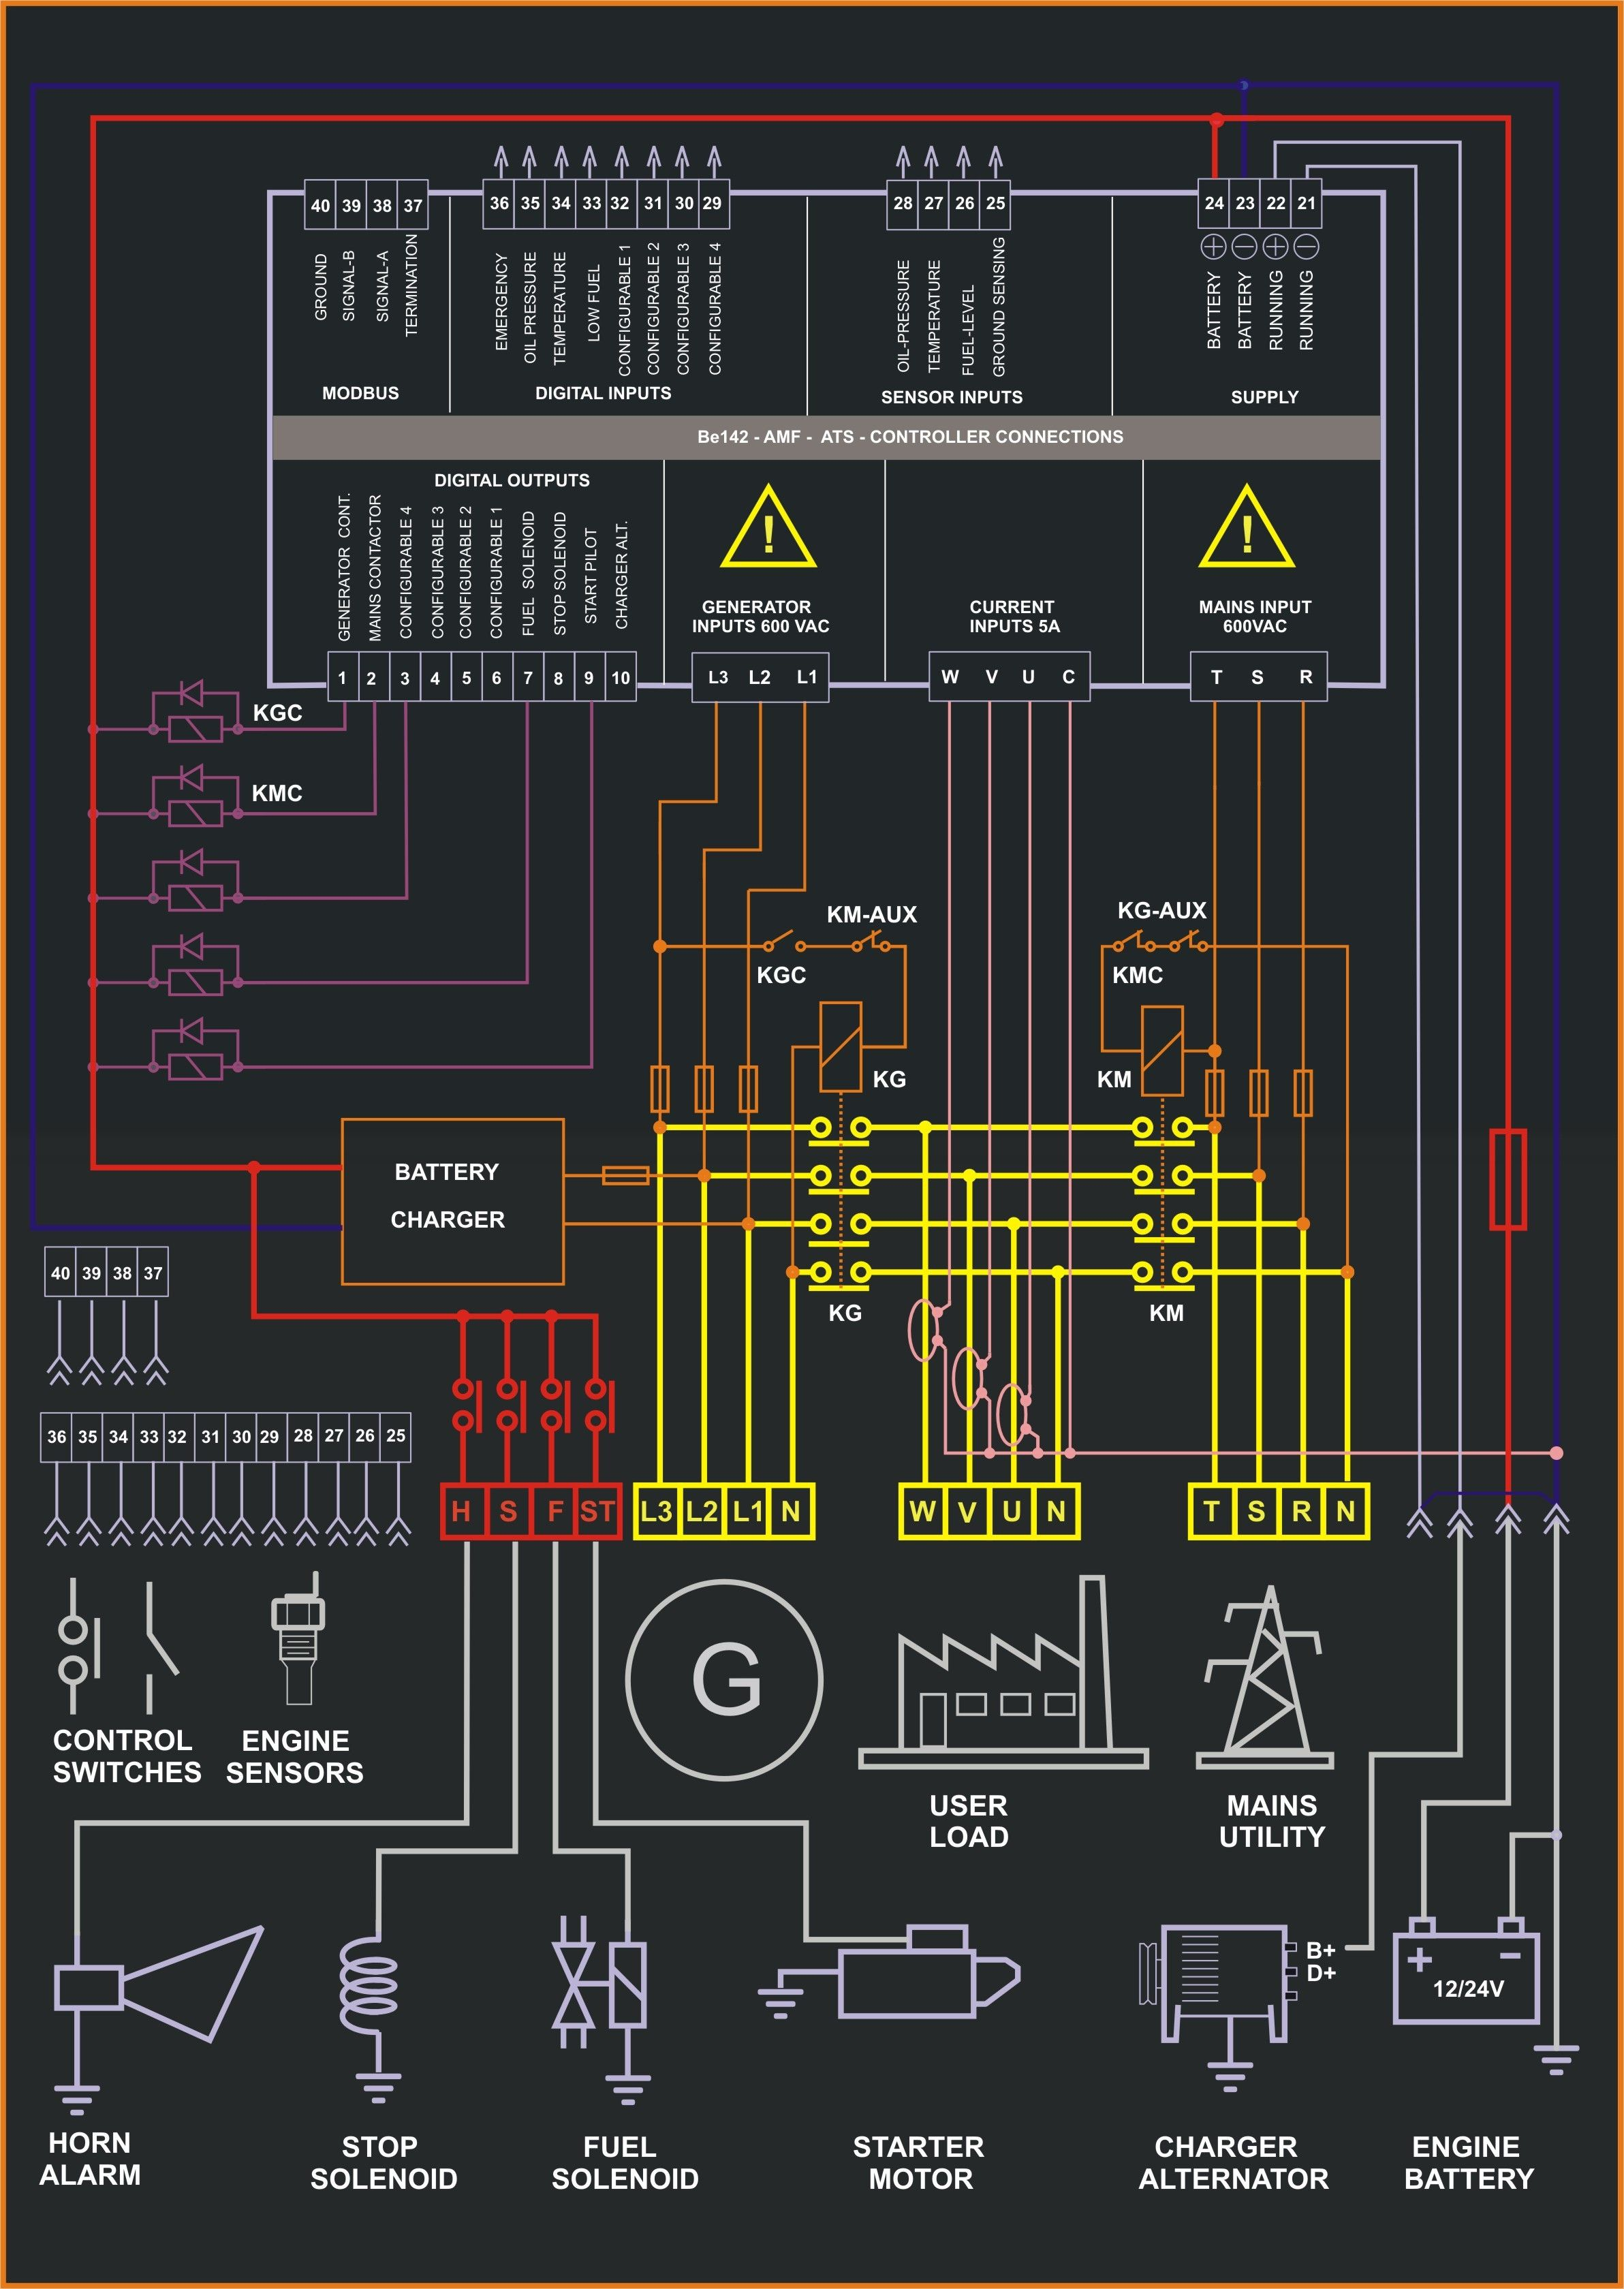 medium resolution of control panel wiring diagram pdf wiring diagram paper fg wilson generator control panel wiring diagram wiring diagram generator control panel